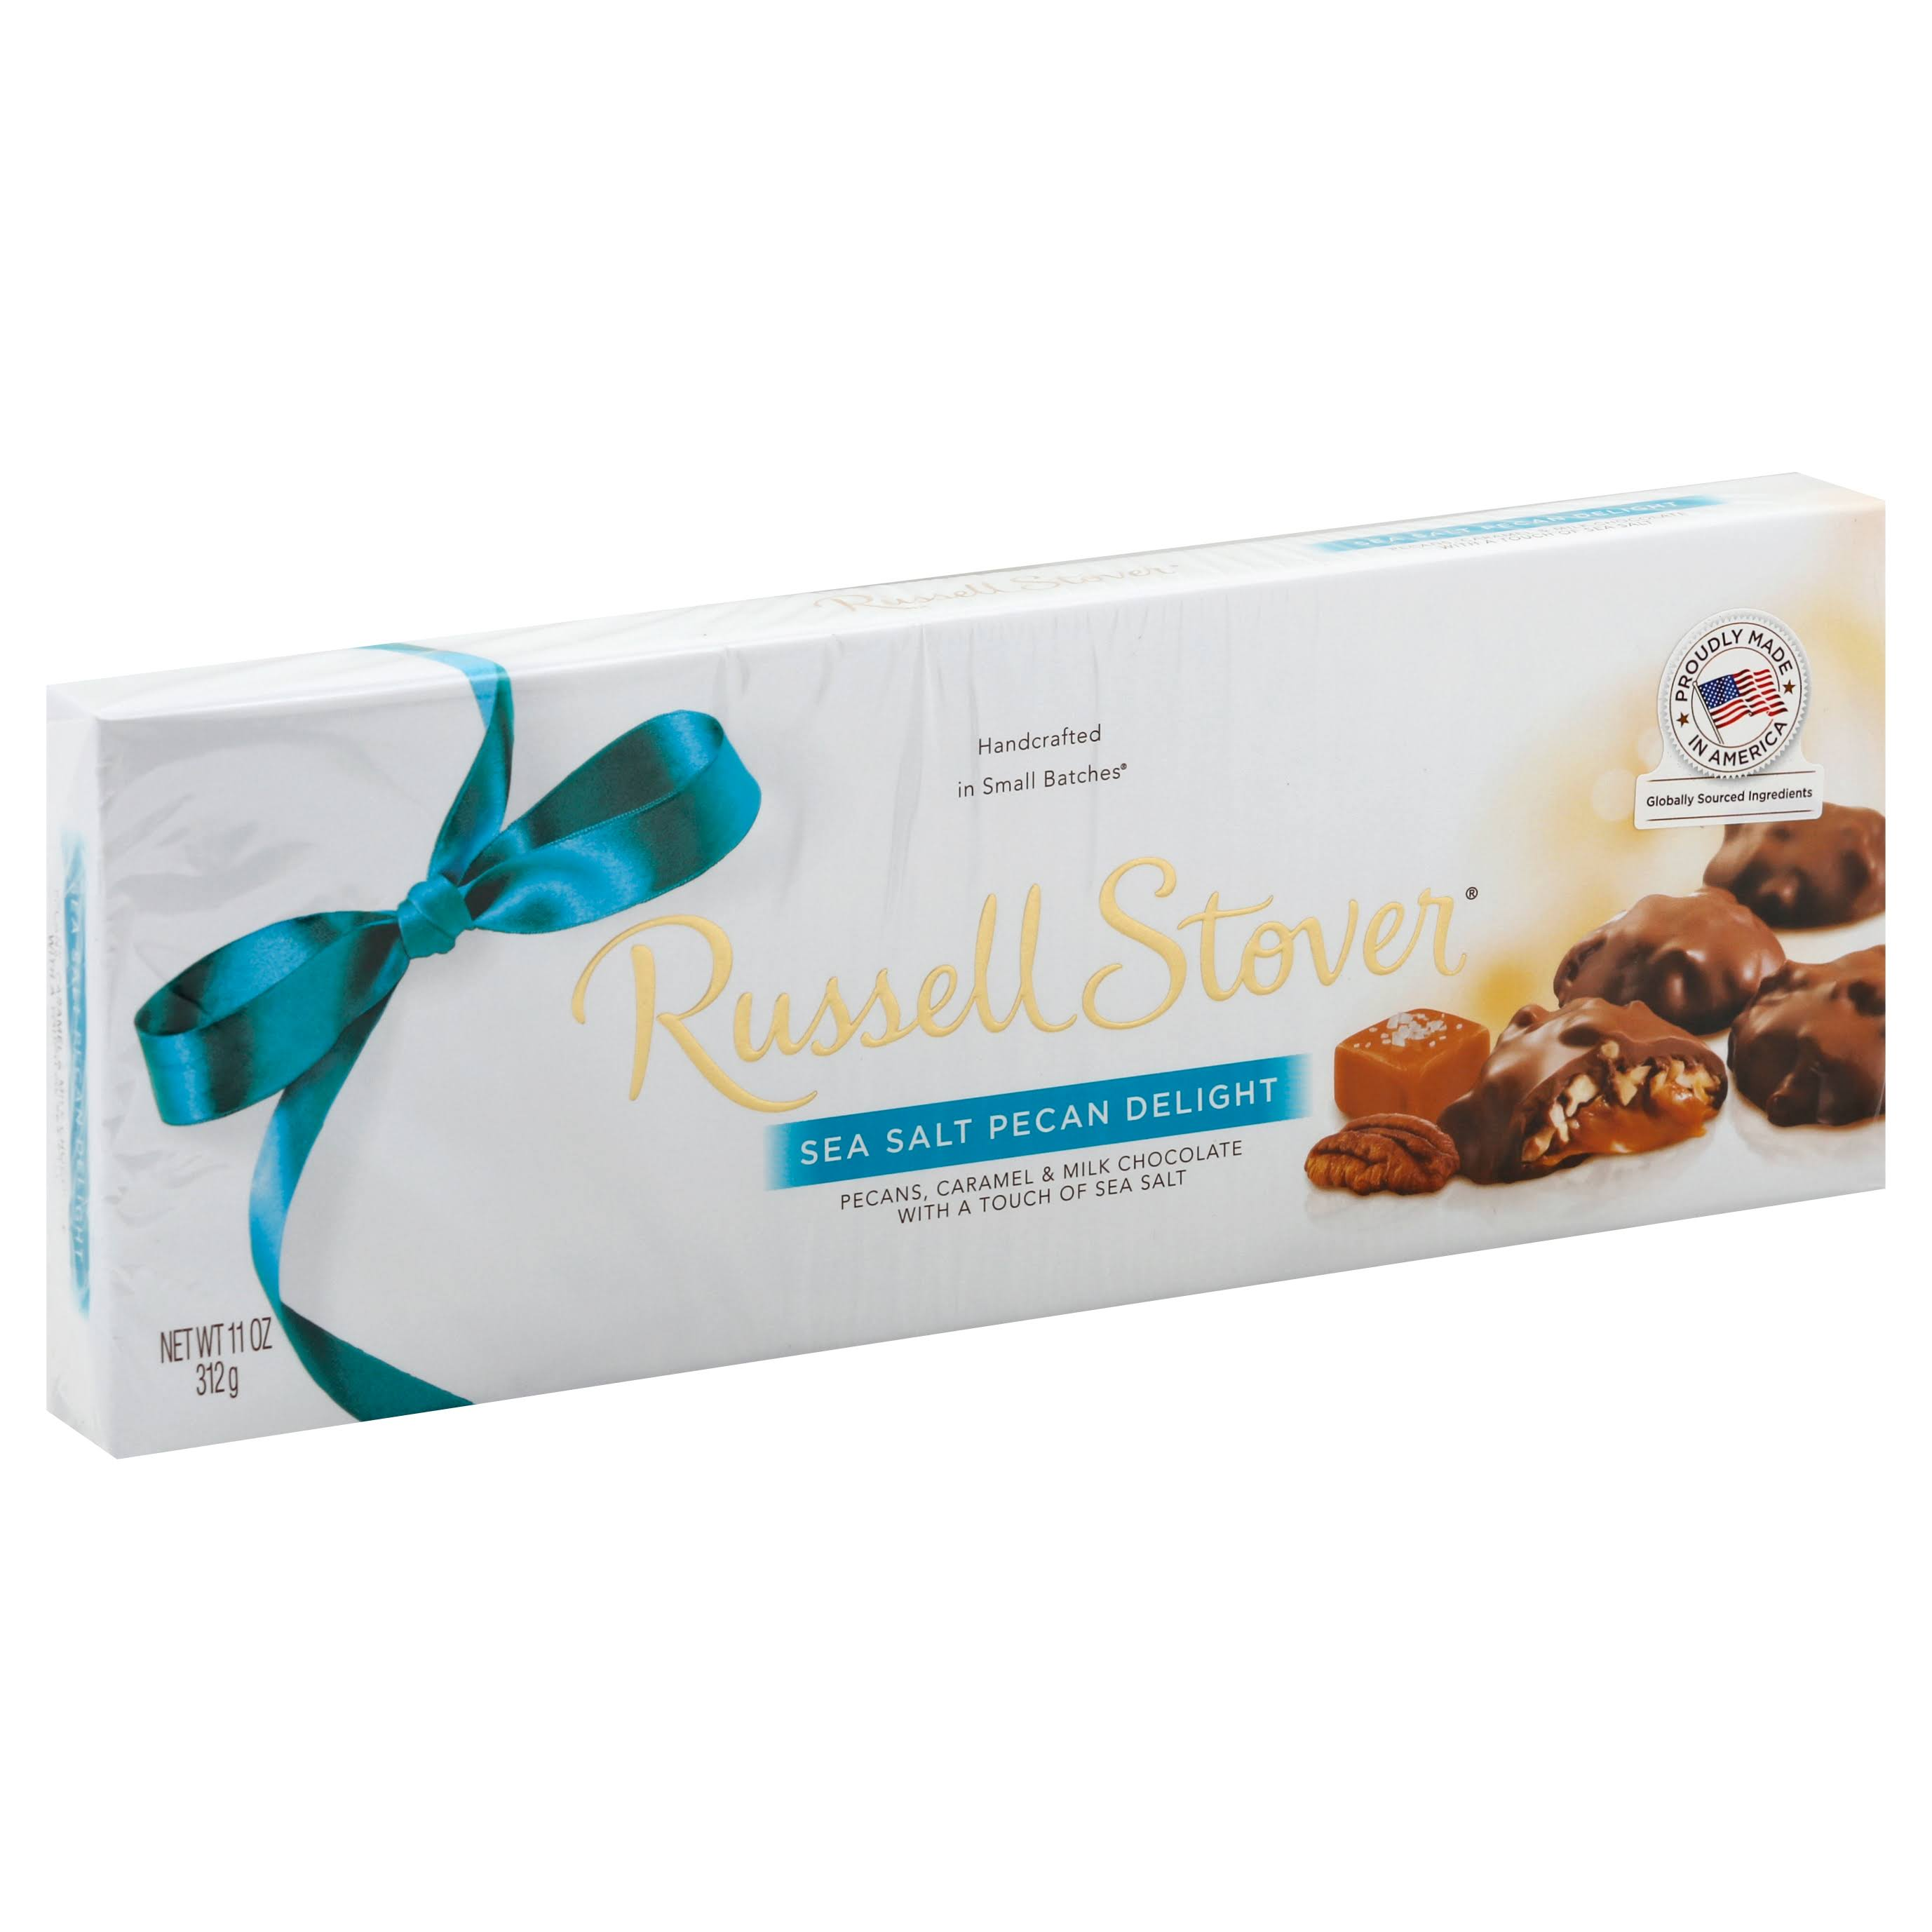 Russell Stover Pecan Delights, Sea Salt - 12 pieces 11 oz (312 g)